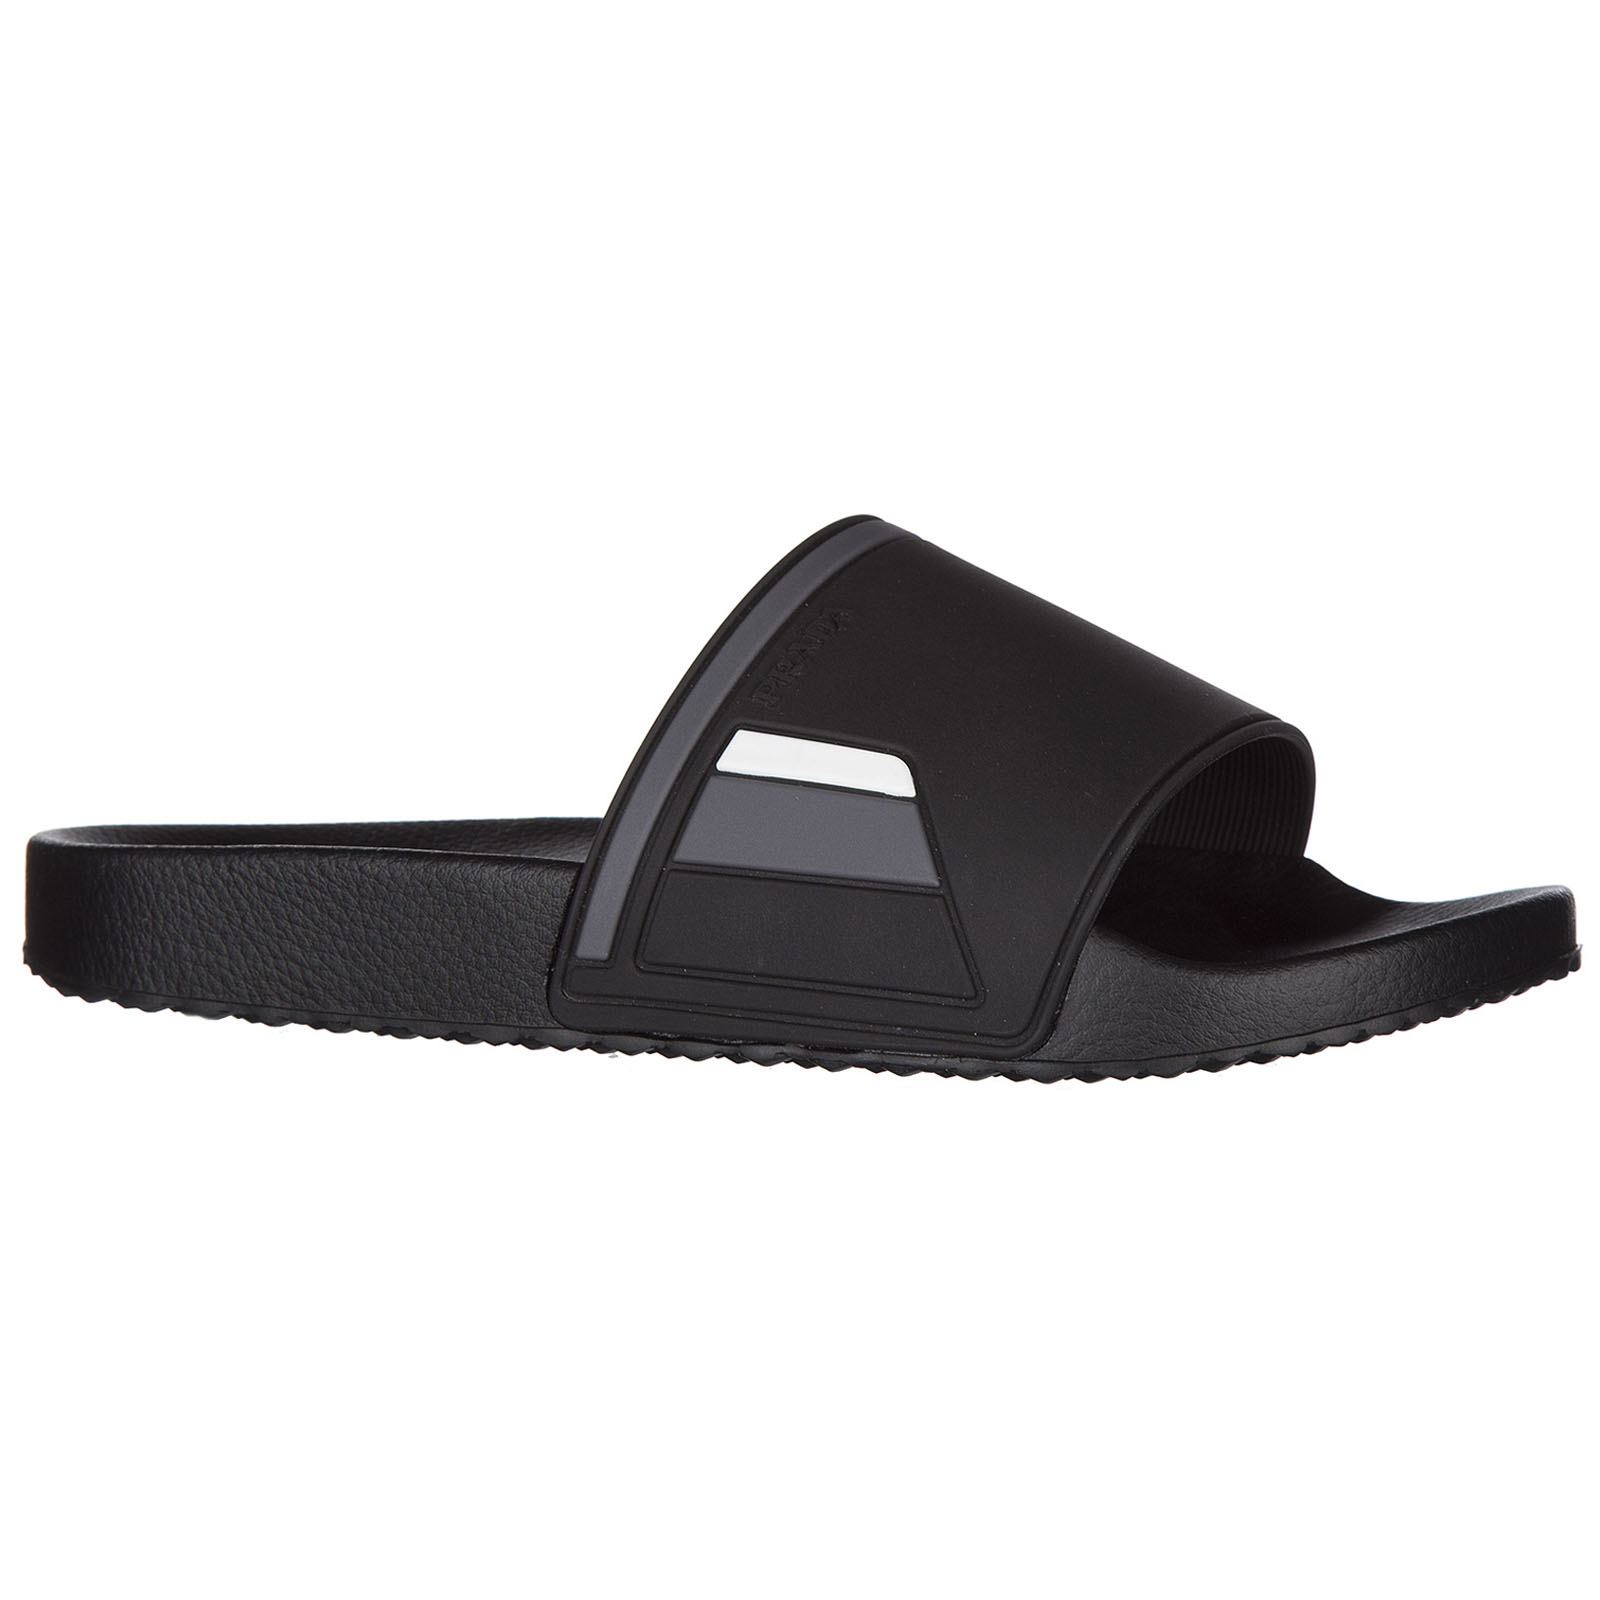 Men's slippers sandals rubber